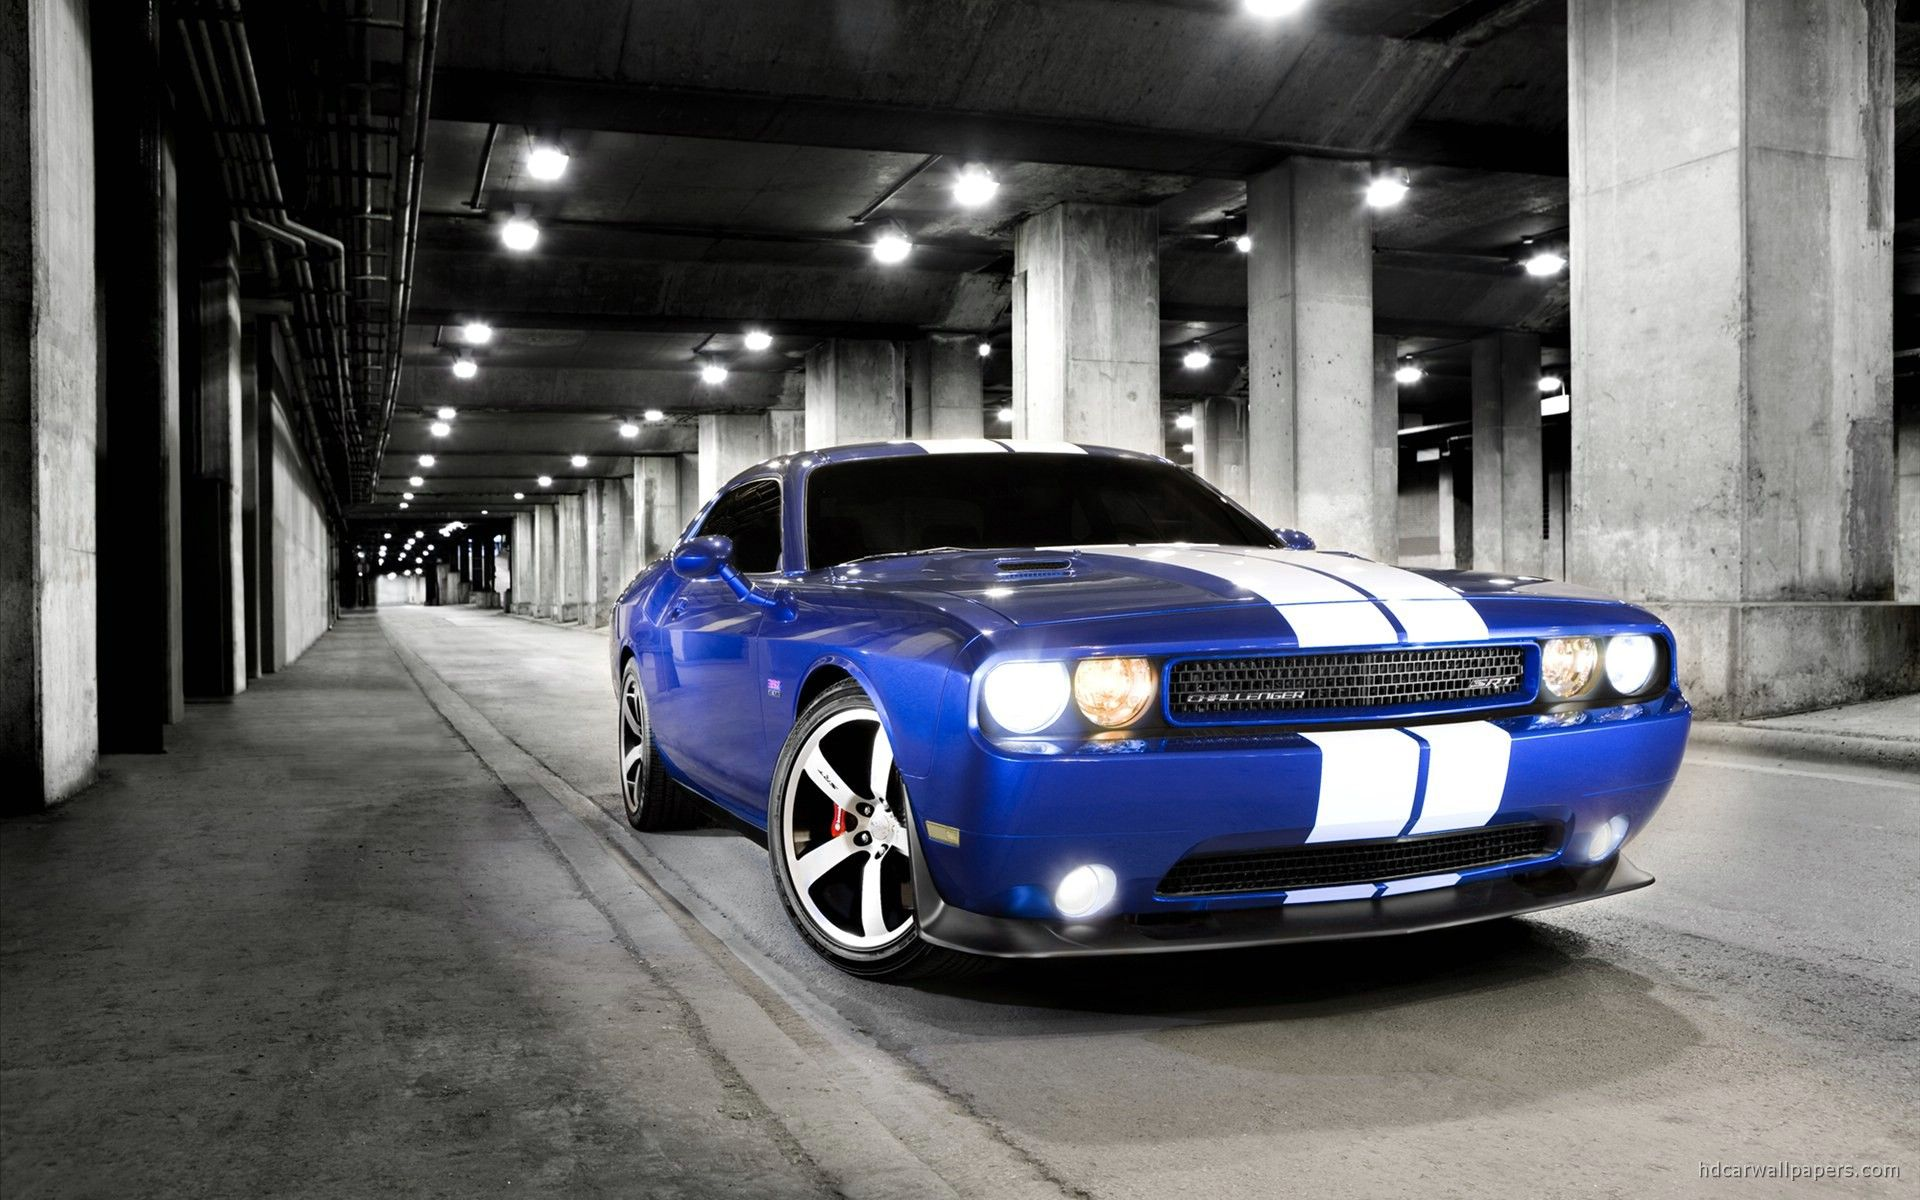 dodge challenger wallpapers free download | pixelstalk